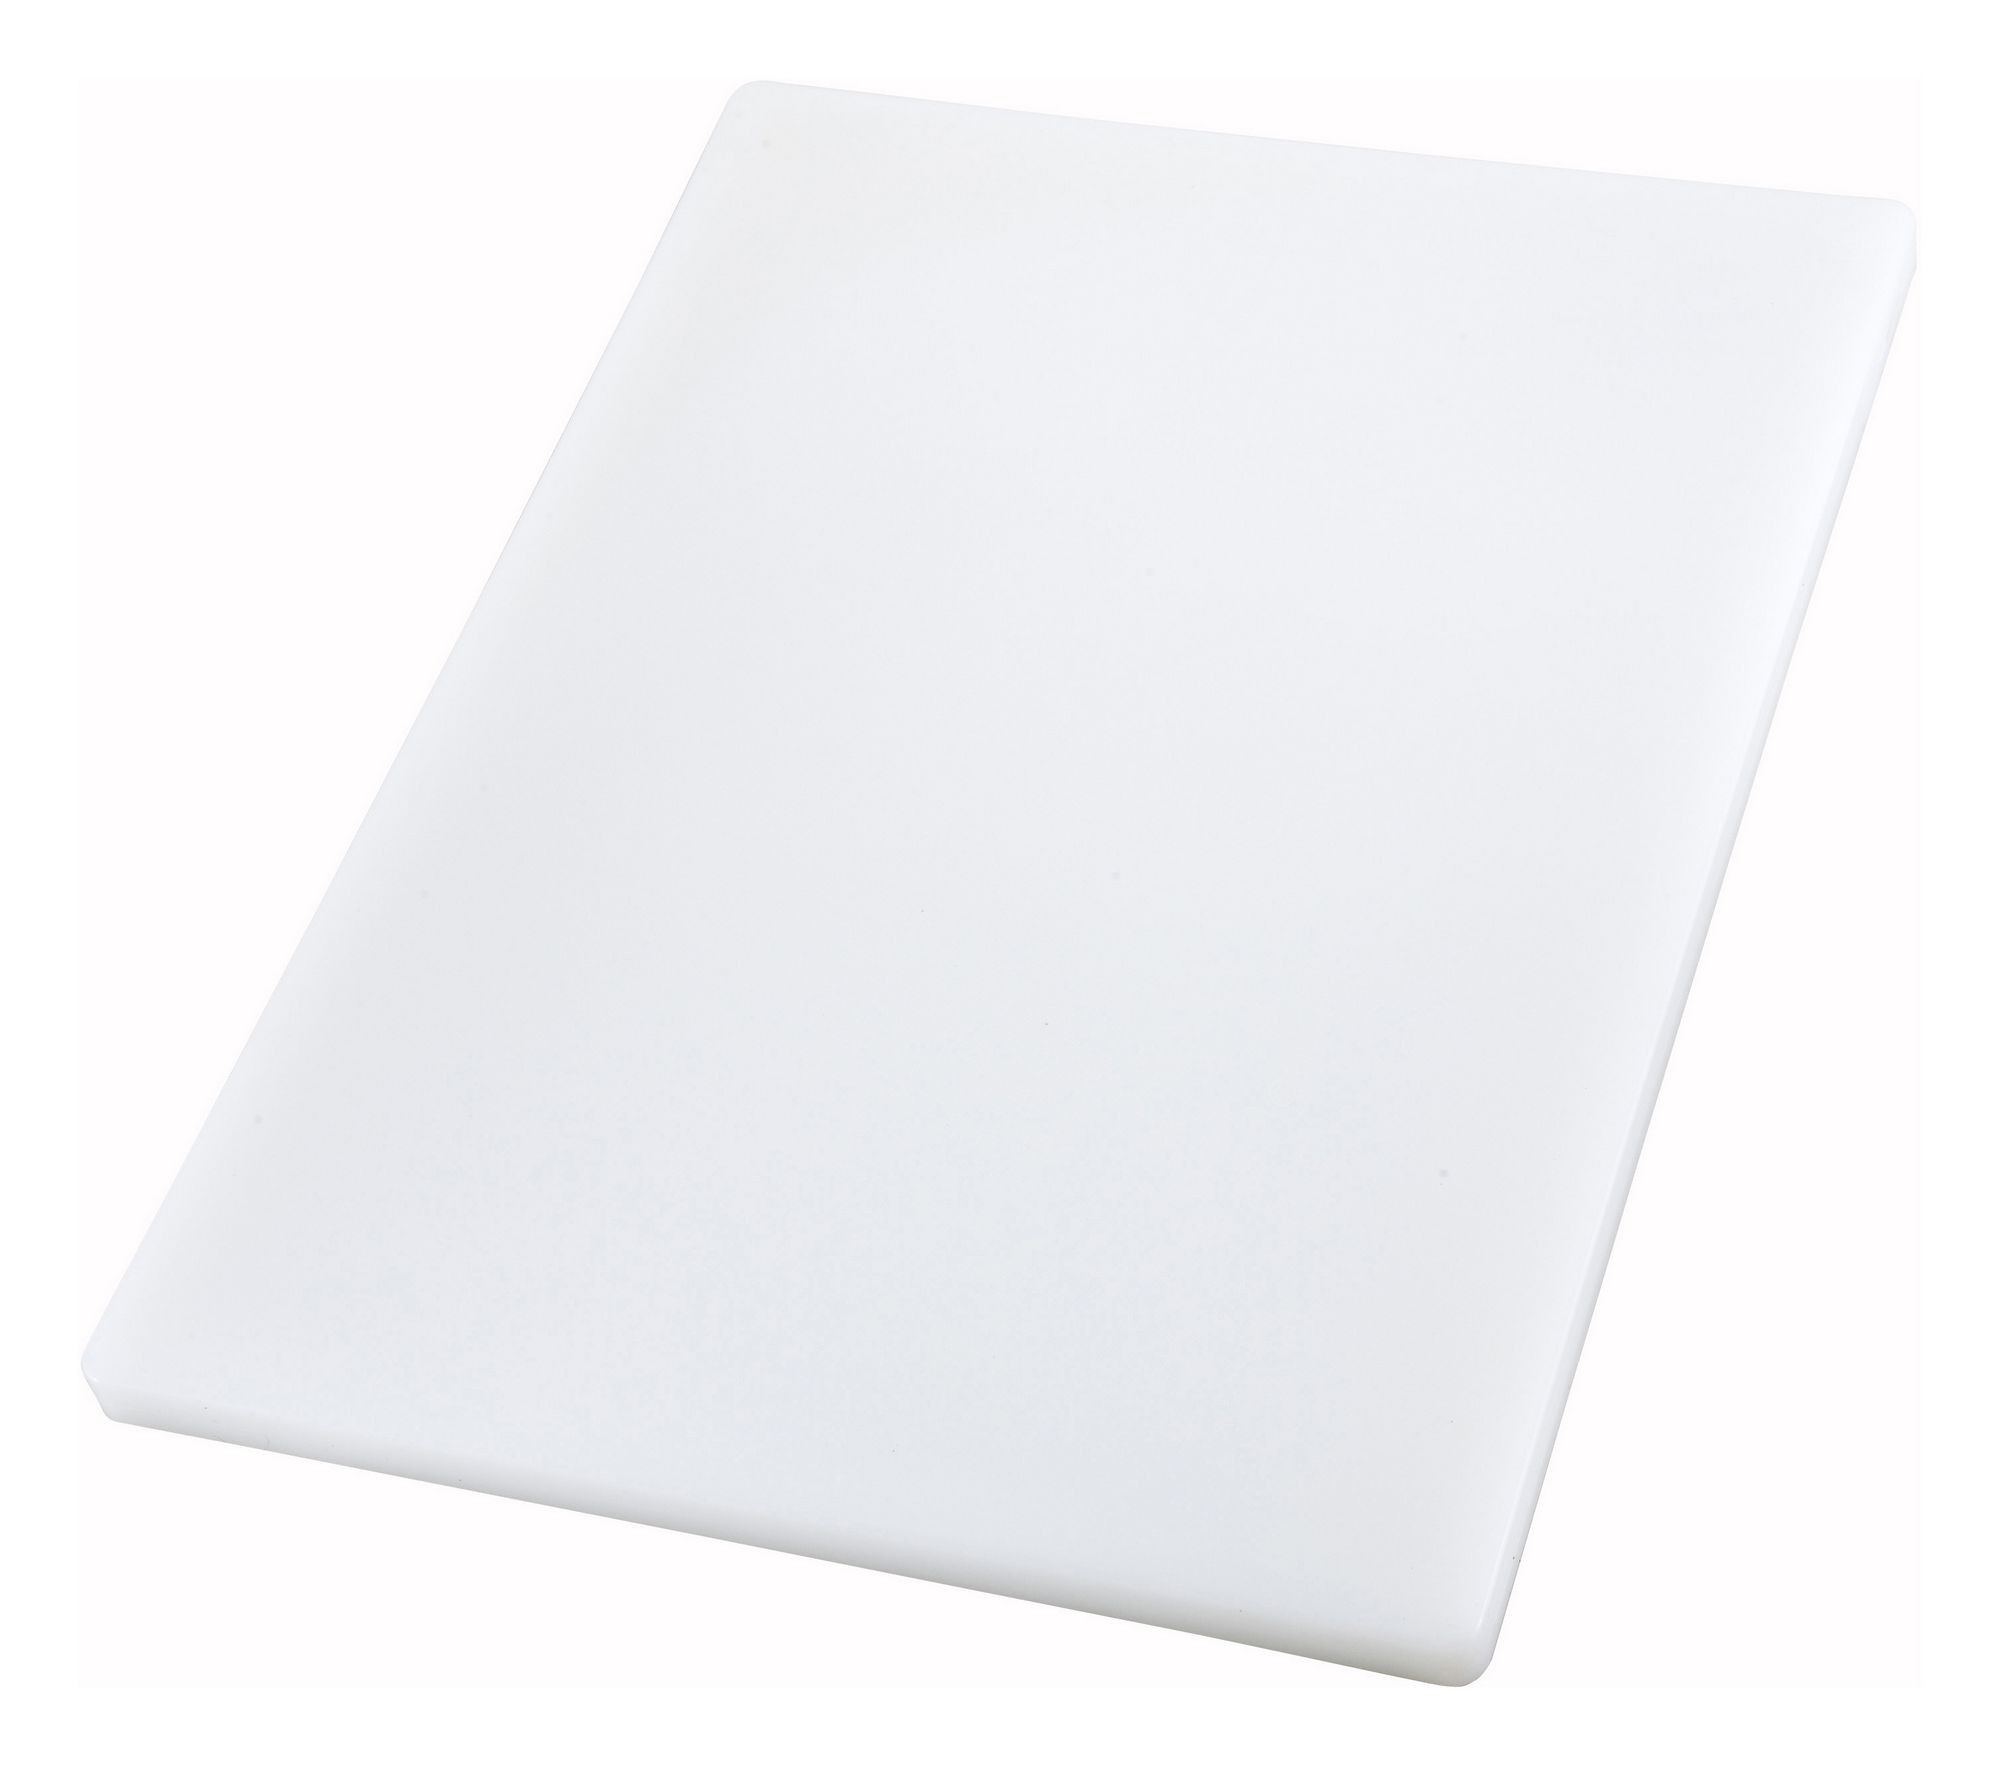 "Winco CBXH-1520 White Cutting Board 15"" x 20"" x 1"""